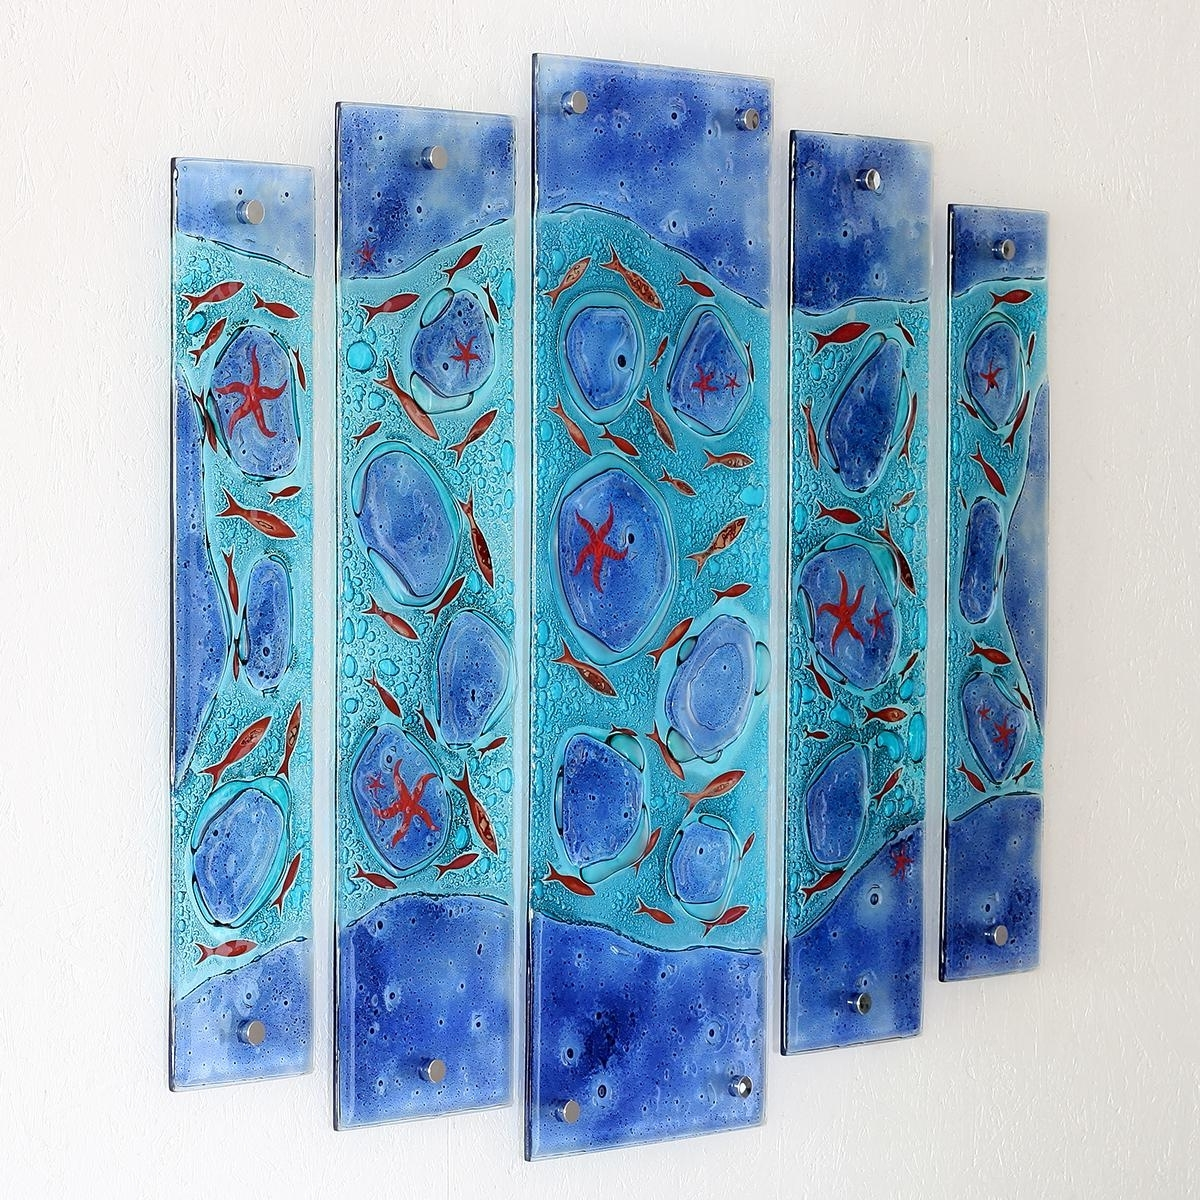 Rockpool Quintych Fused Glass Wall Artjo Downs – Jo Downs Intended For Most Recent Fused Glass Wall Art (Gallery 13 of 15)